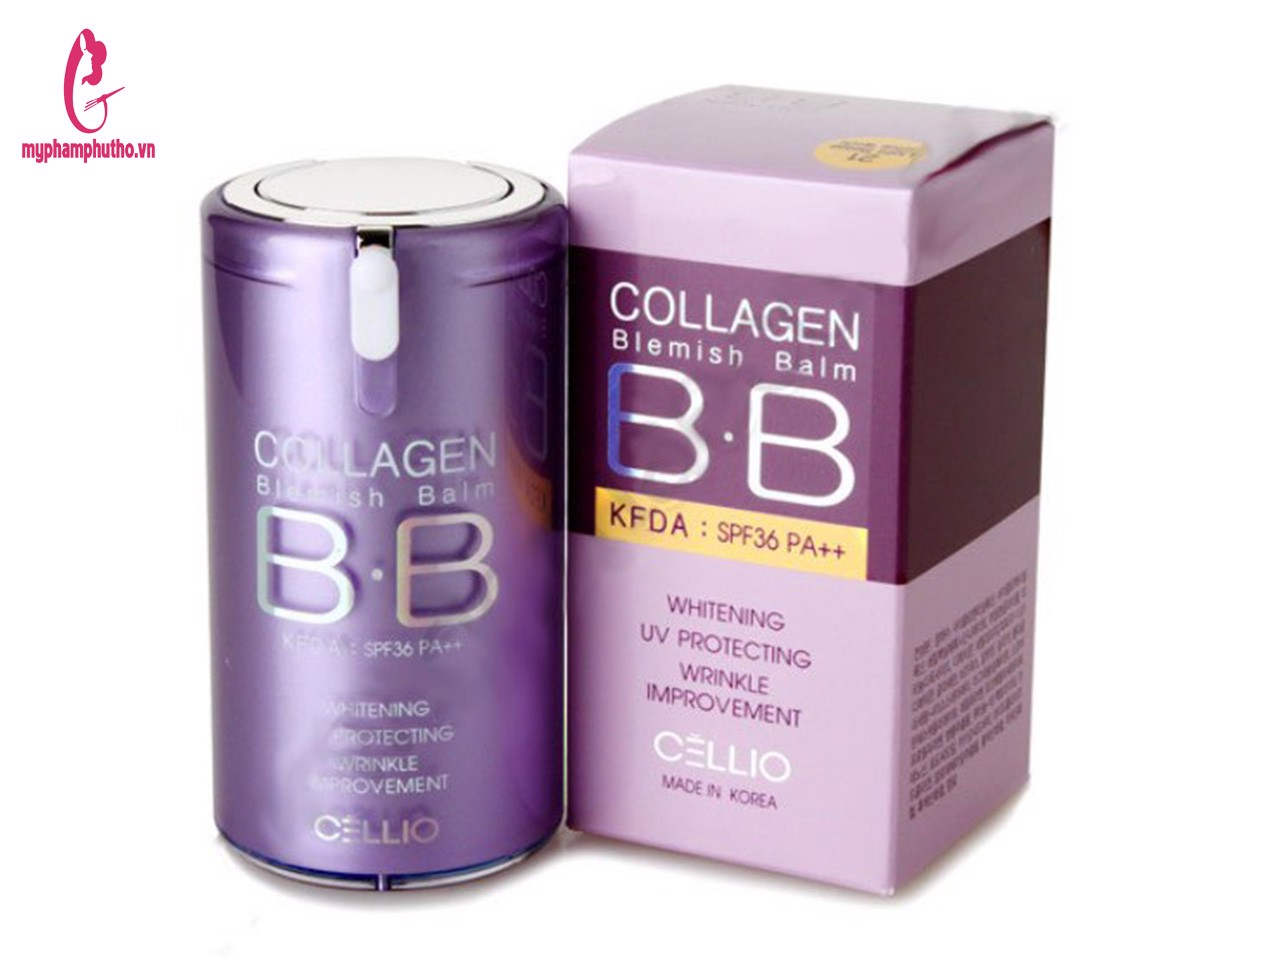 Kem nền BB Cellio Collagen Blemish Balm